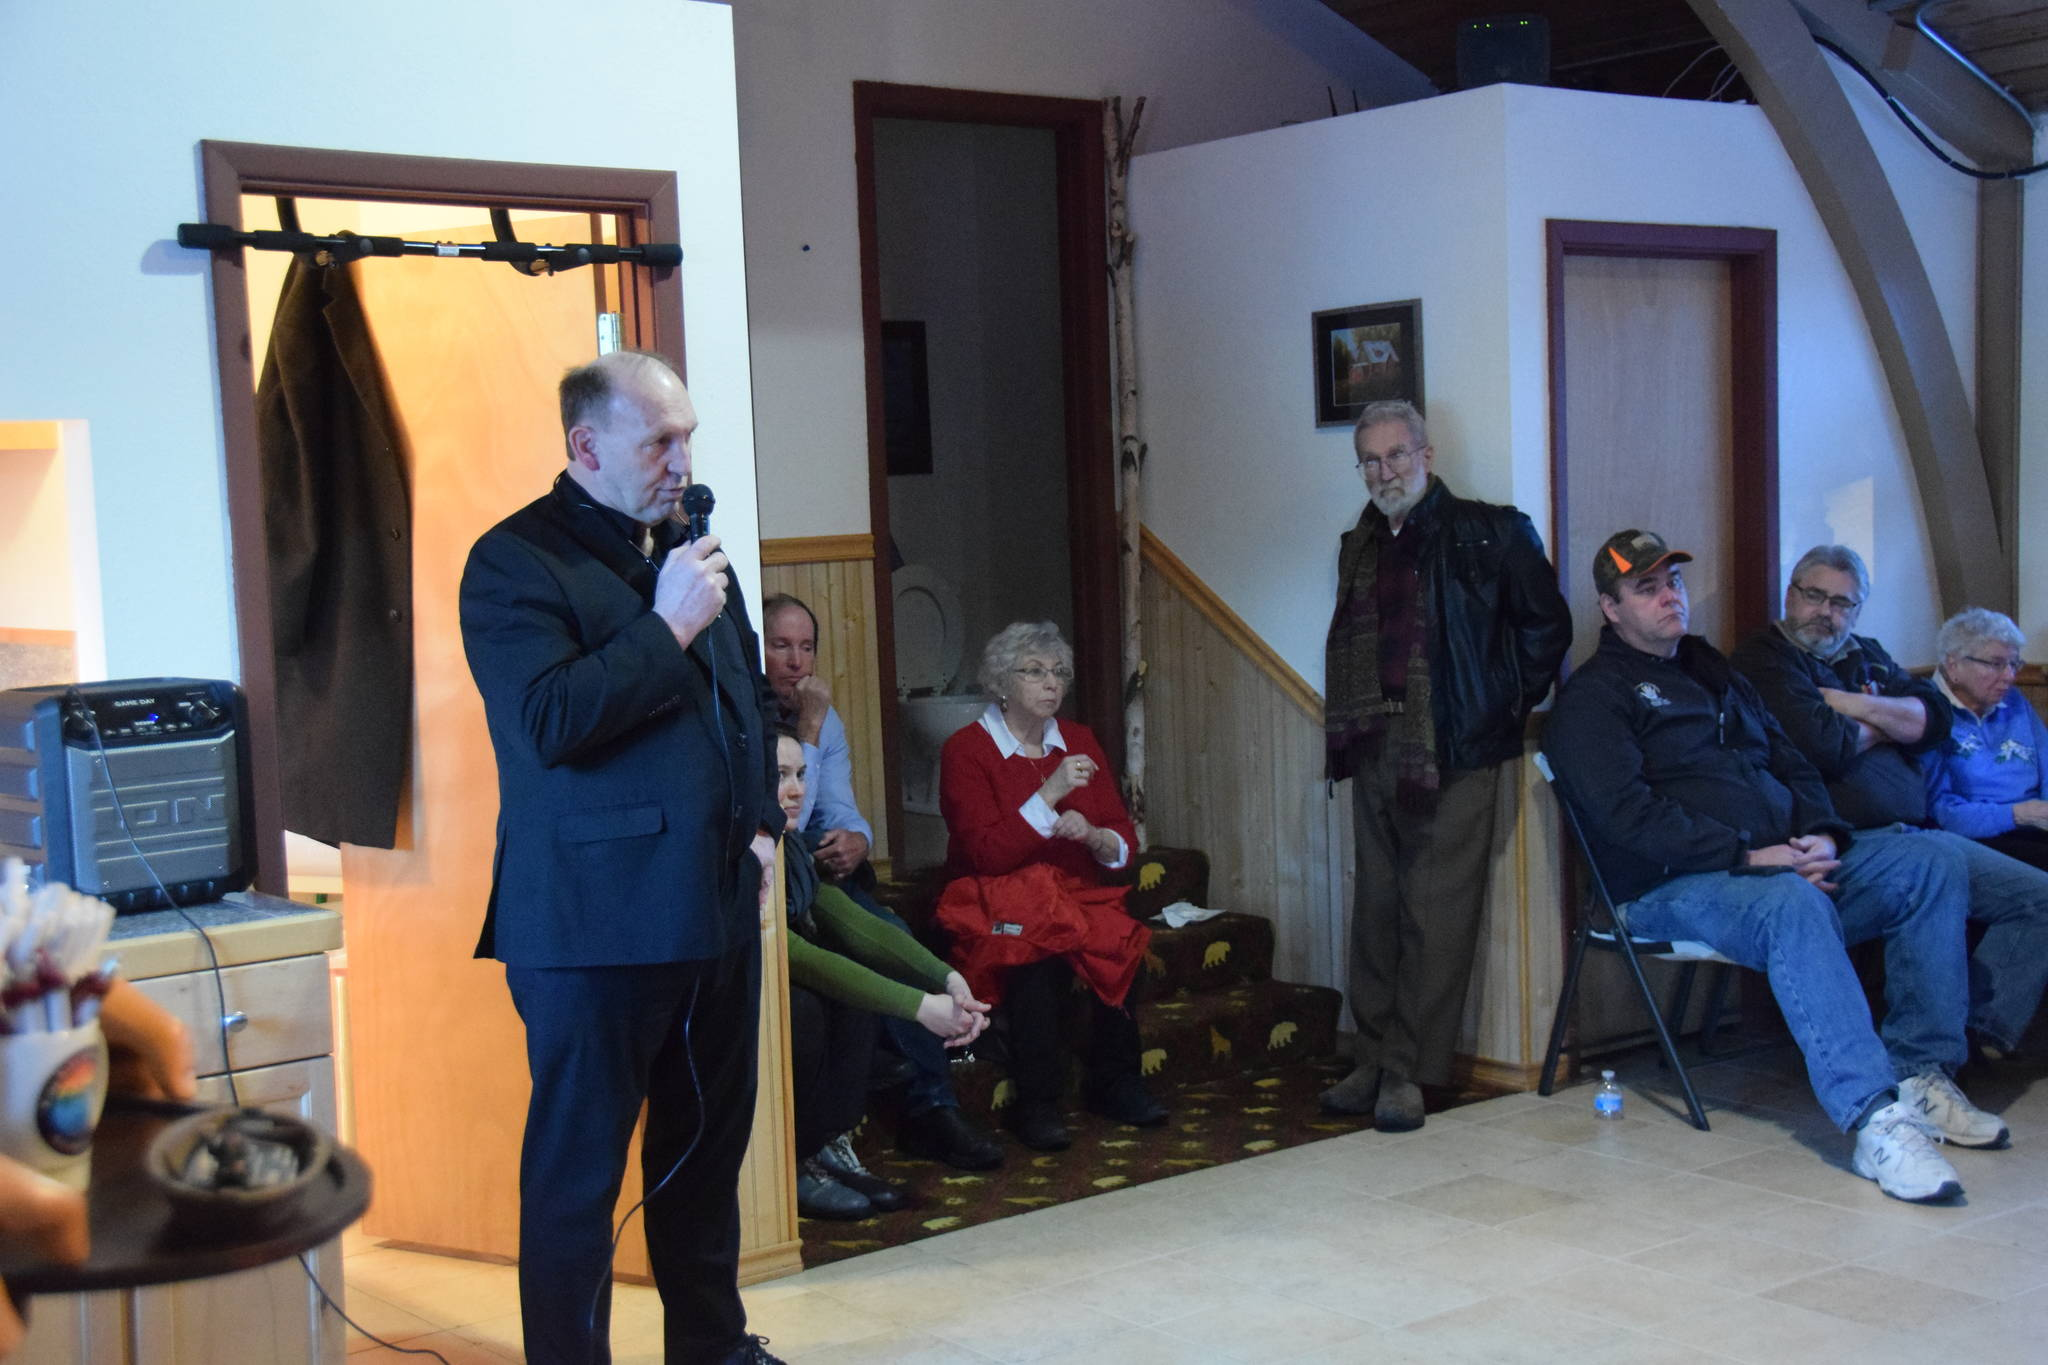 Rep. Gary Knopp, R- Soldotna, speaks at a town hall at the Kenai River Suites in Soldotna on Feb. 15, 2019. Photo by Brian Mazurek/Peninsula Clarion)